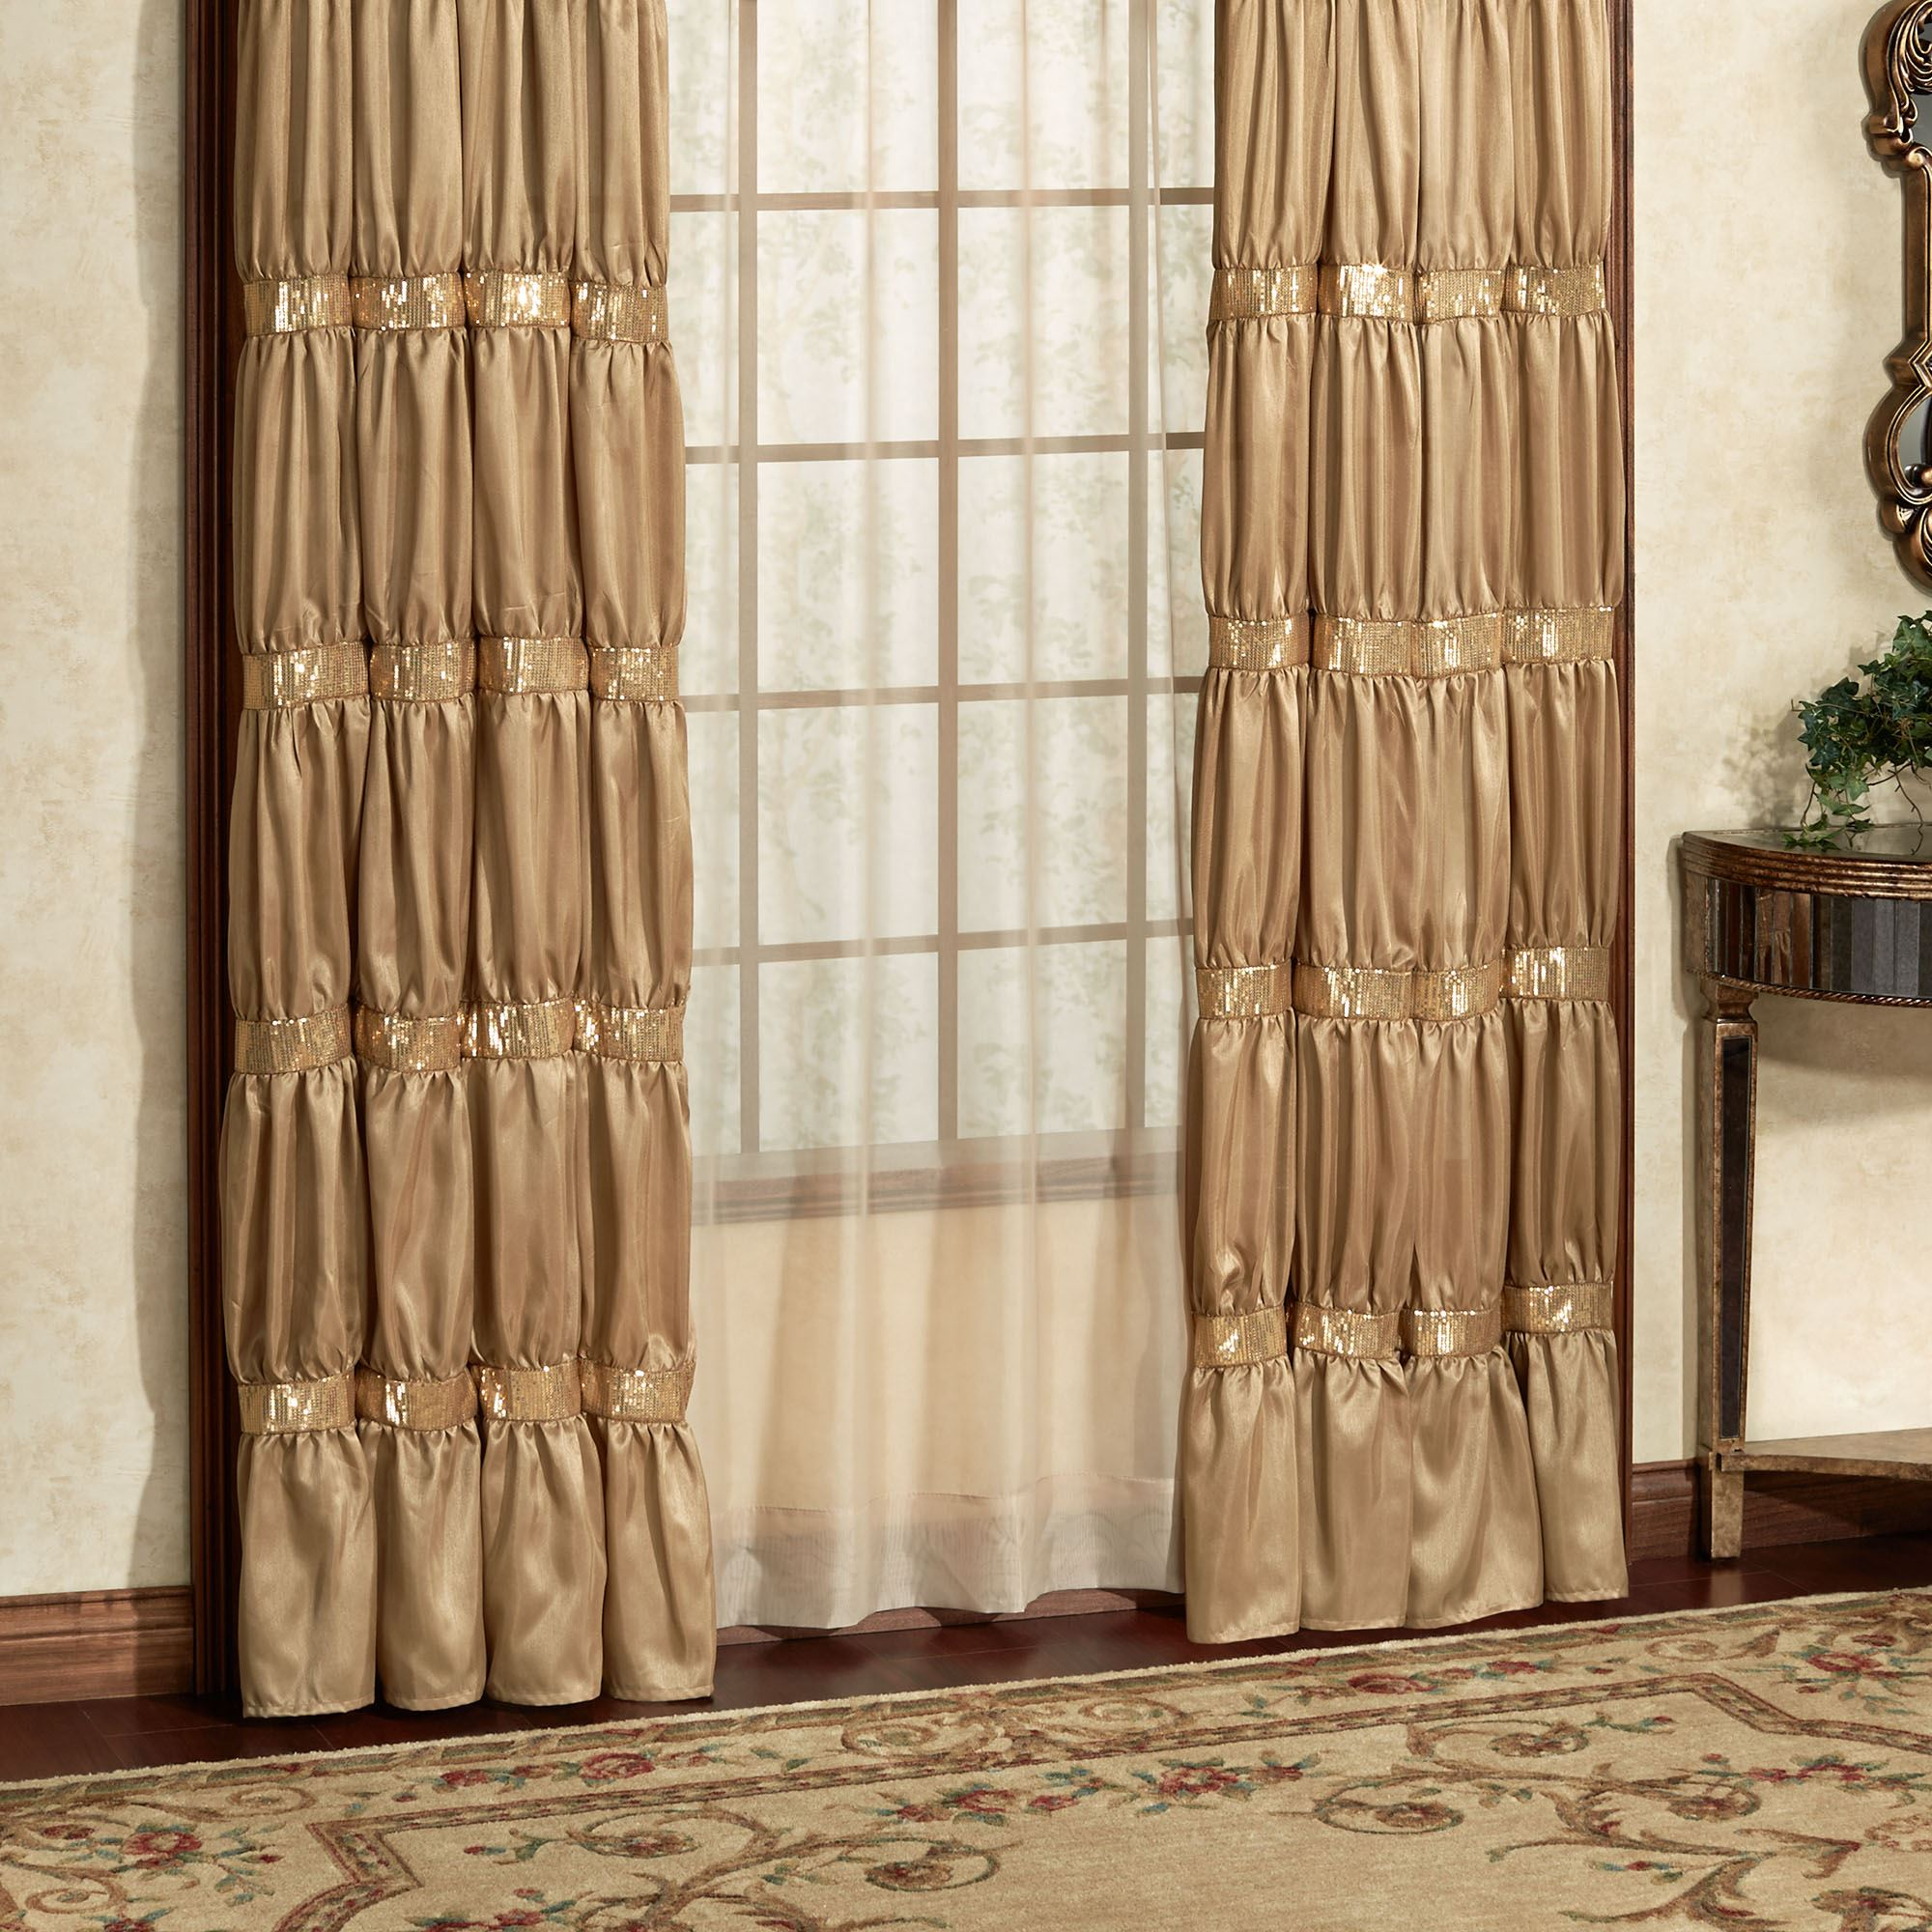 Attractive Splendor Shirred Faux Silk Dark Gold Window Treatment RE17